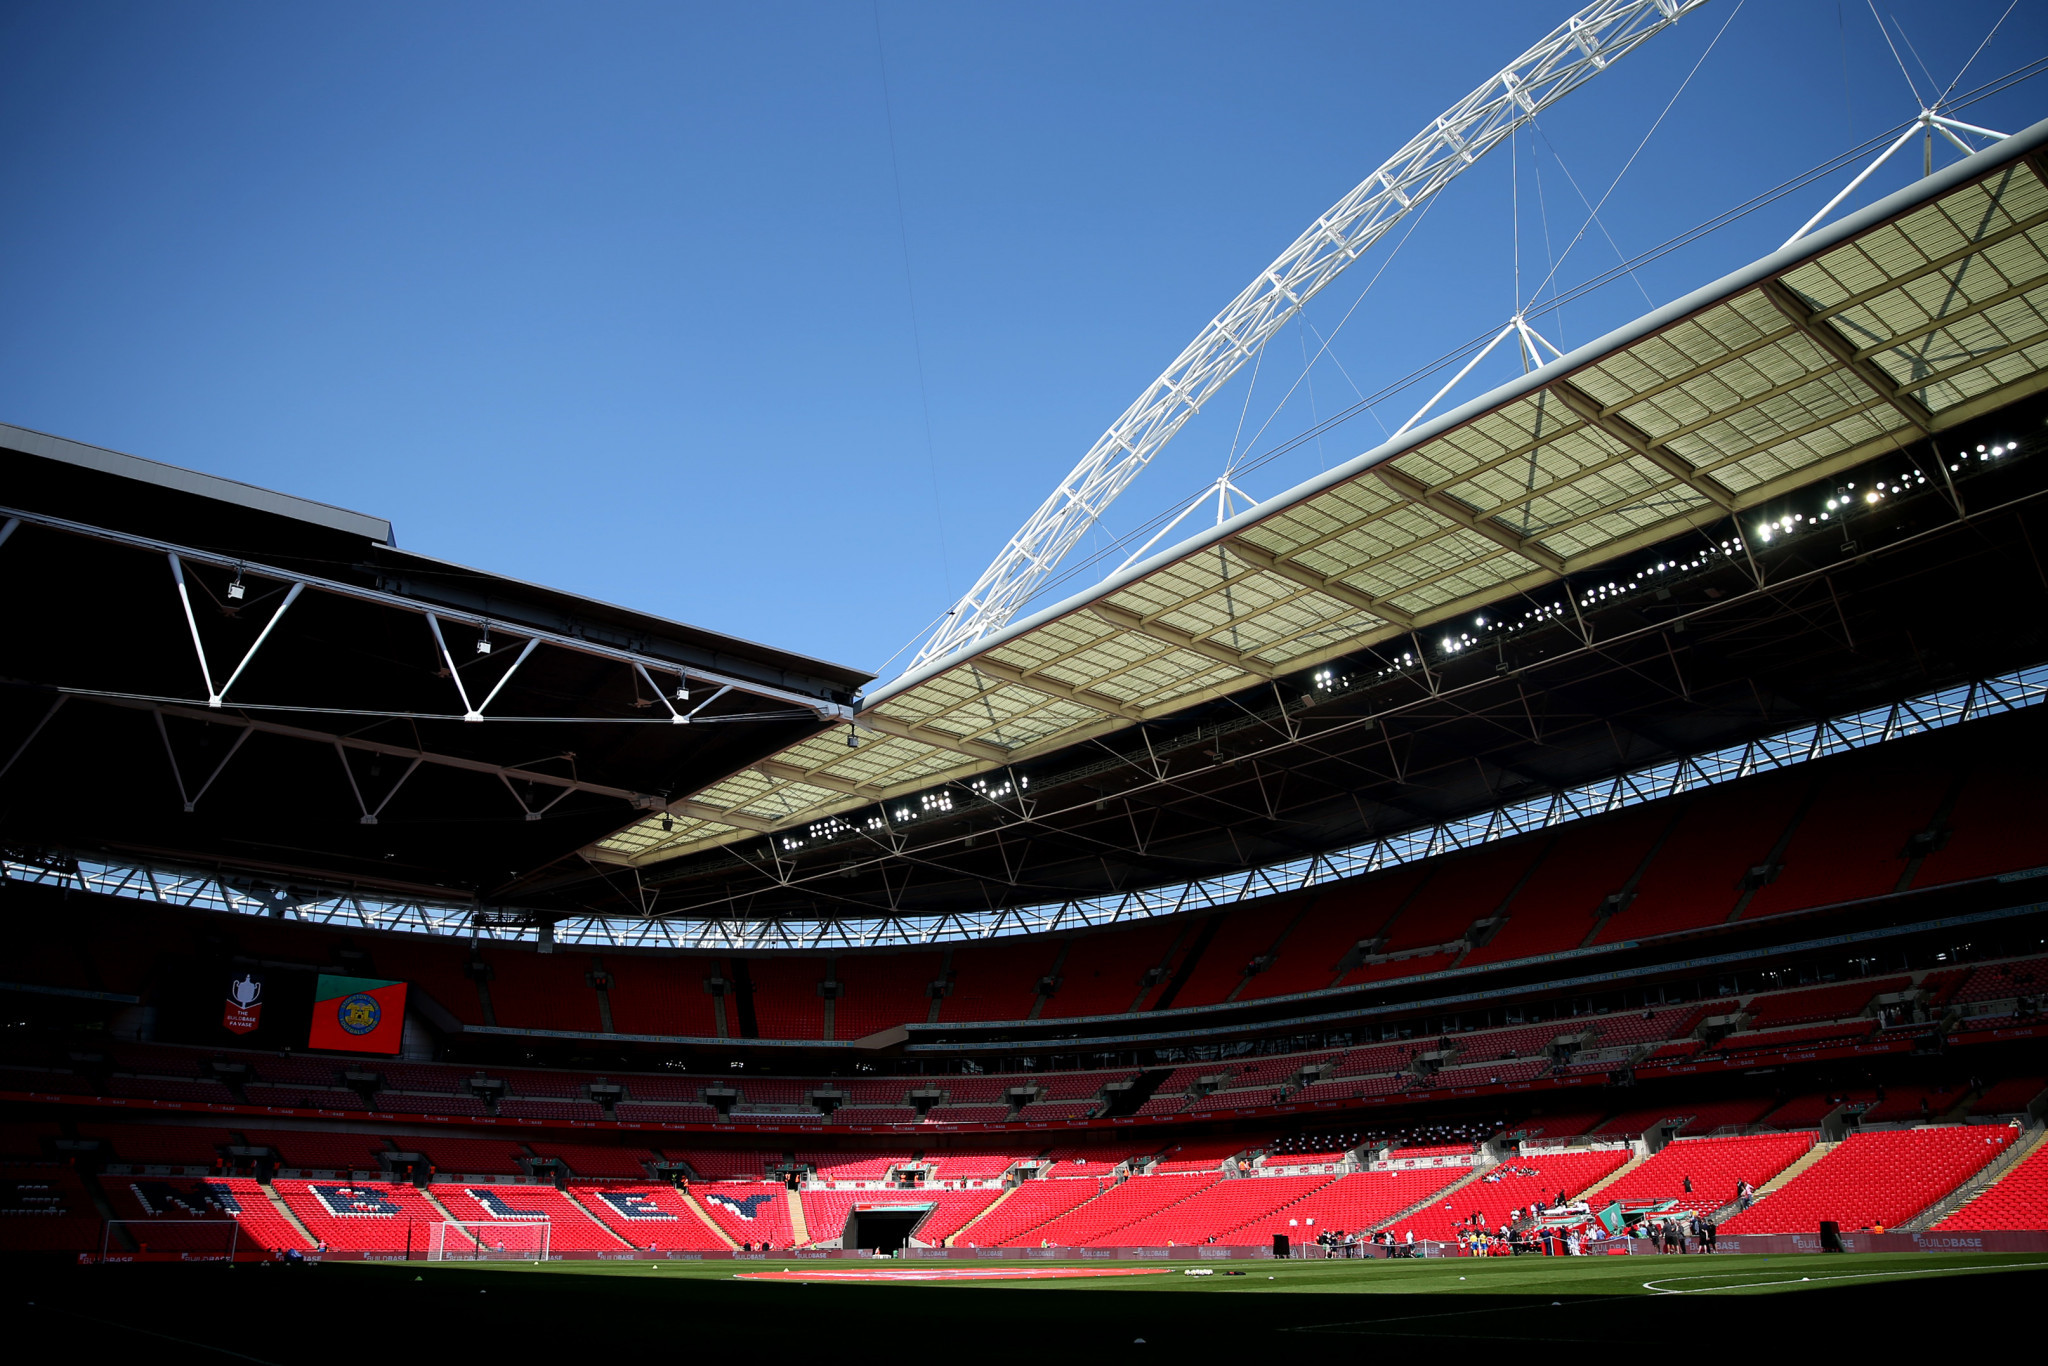 England to explore possibility of 2030 FIFA World Cup bid